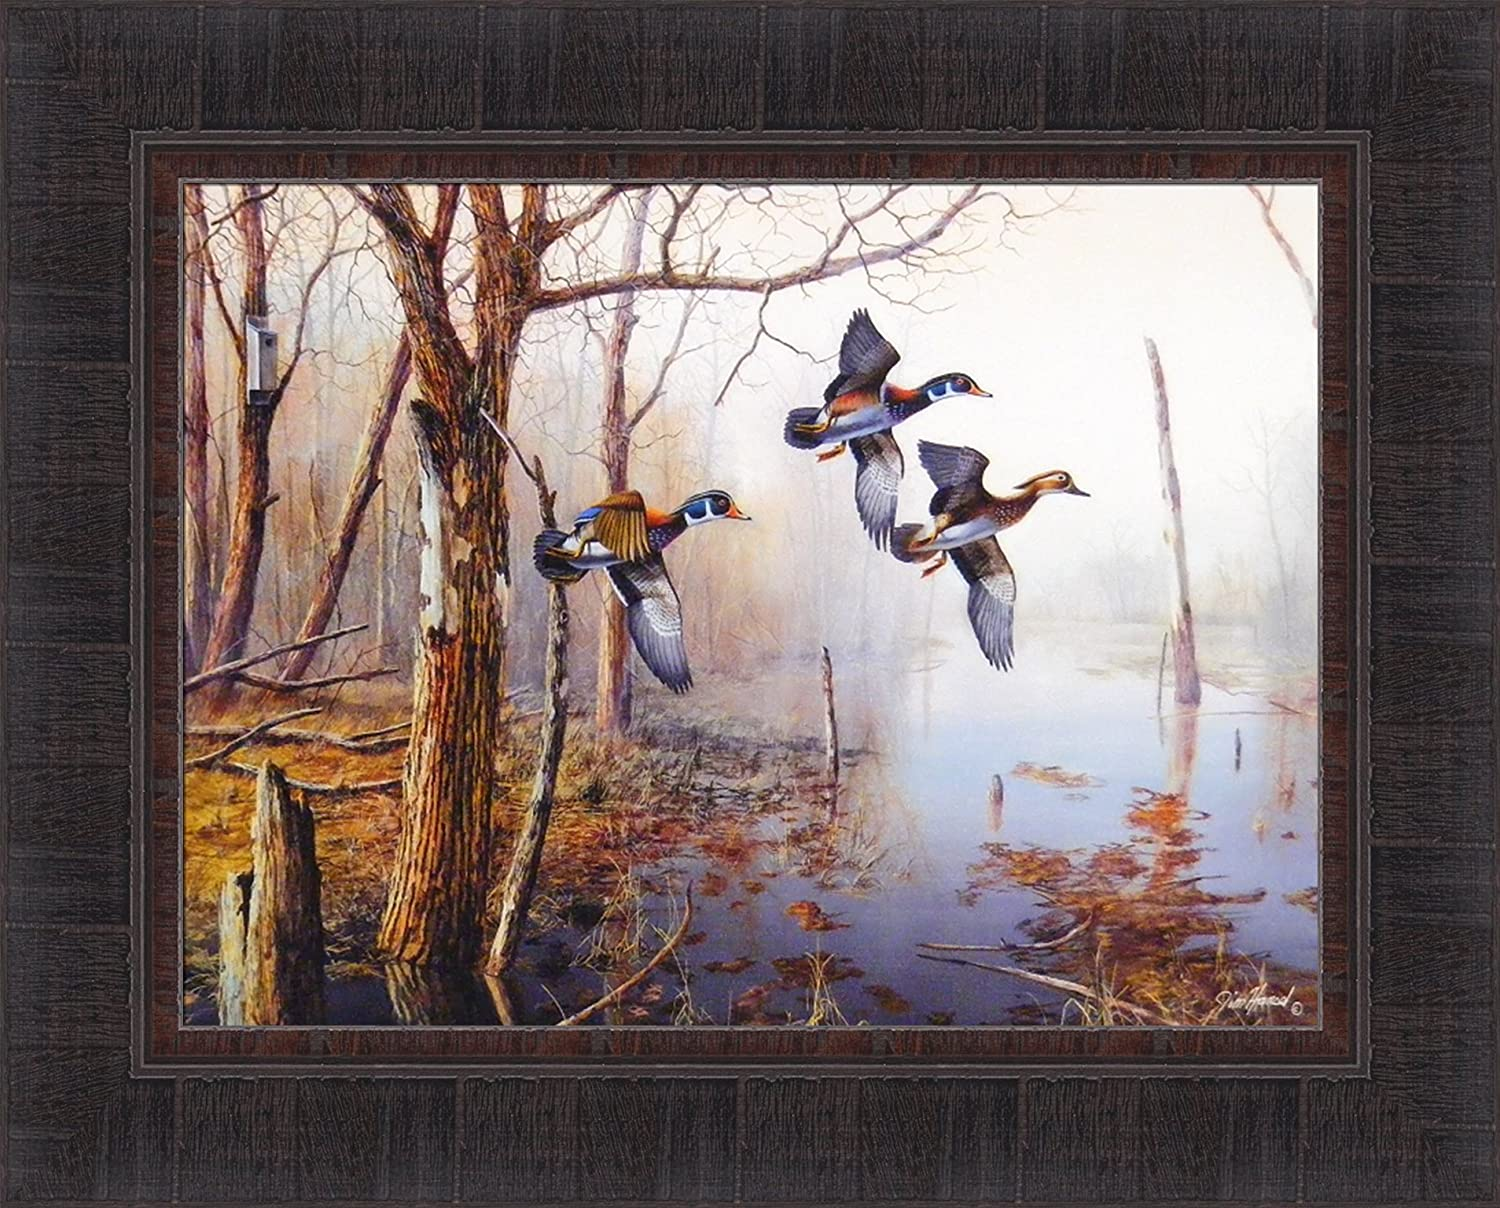 Amazon Com Backwater By Jim Hansel 17x21 Wood Ducks Framed Art Print Wall Decor Picture Duck Pictures For Walls Posters Prints